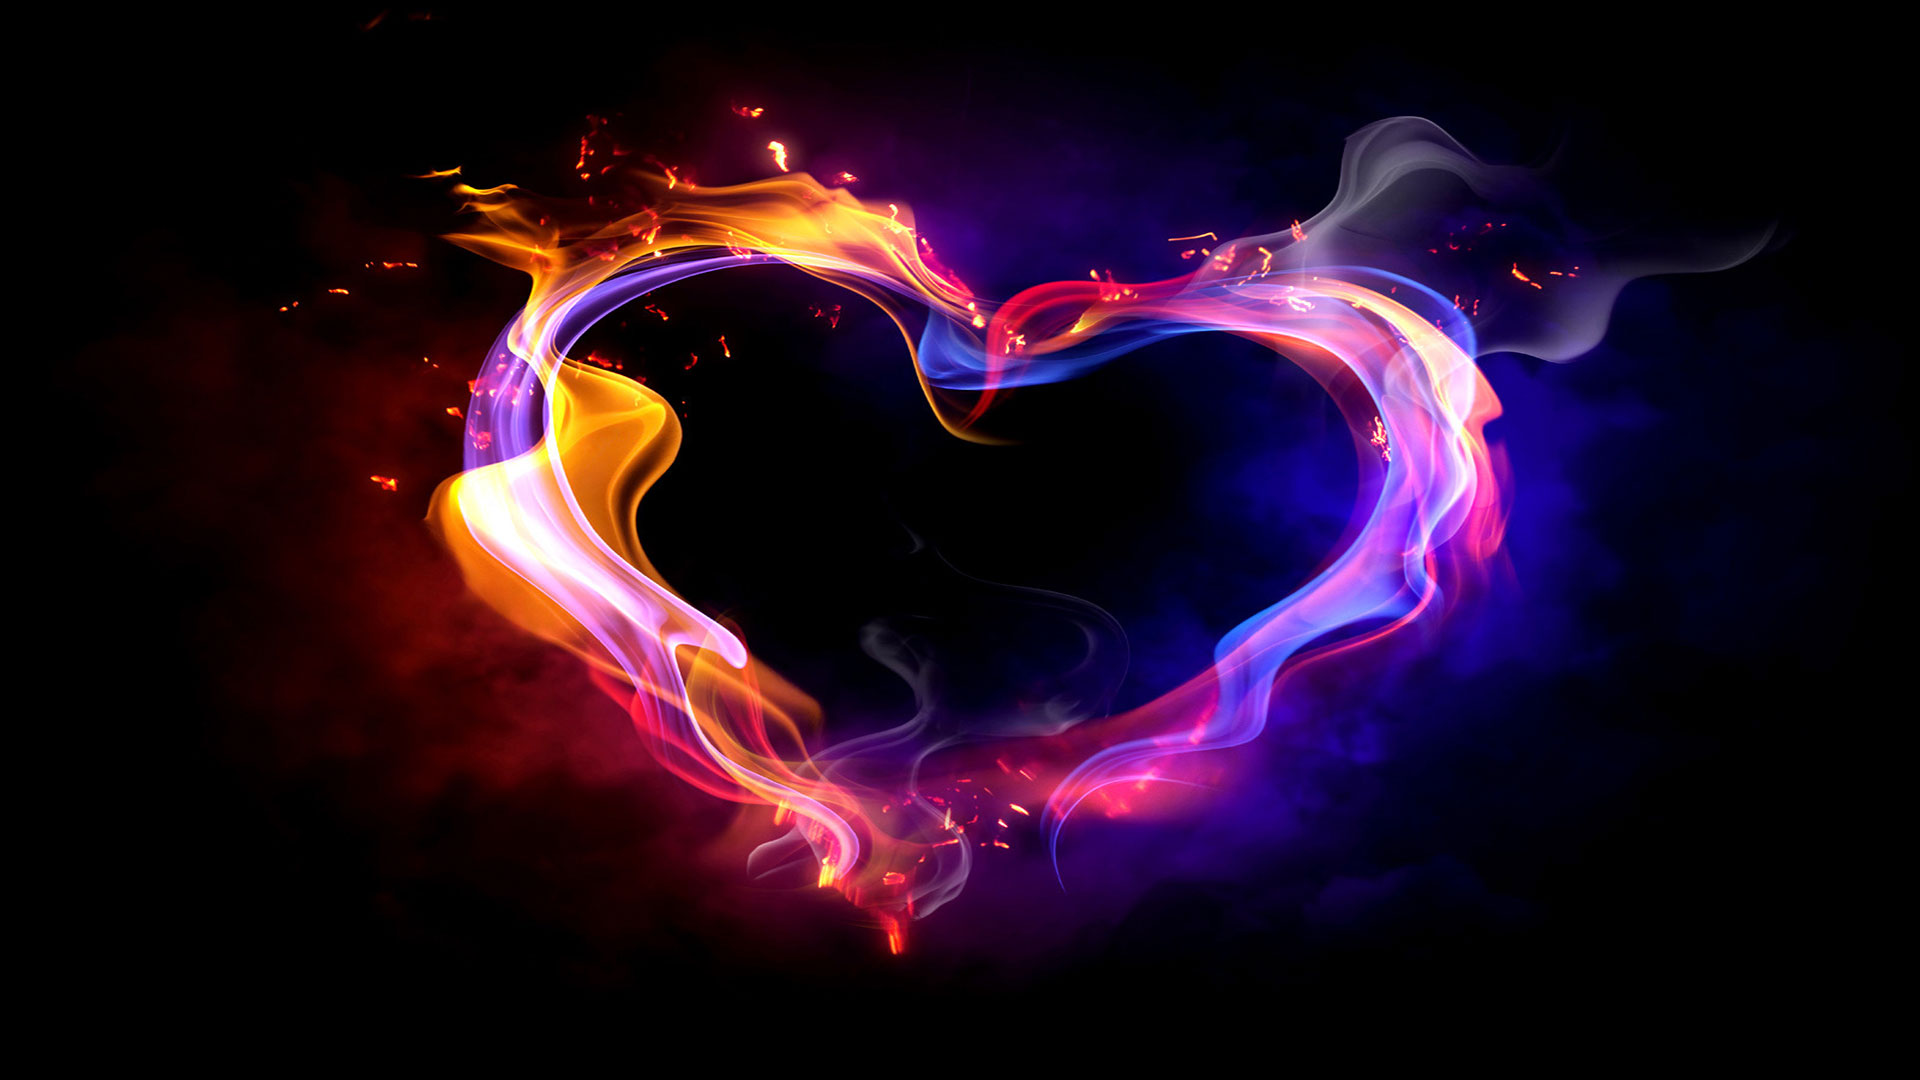 Download Colorful Smoke Heart 20818 Hd Widescreen Wallpapers By 1920x1080